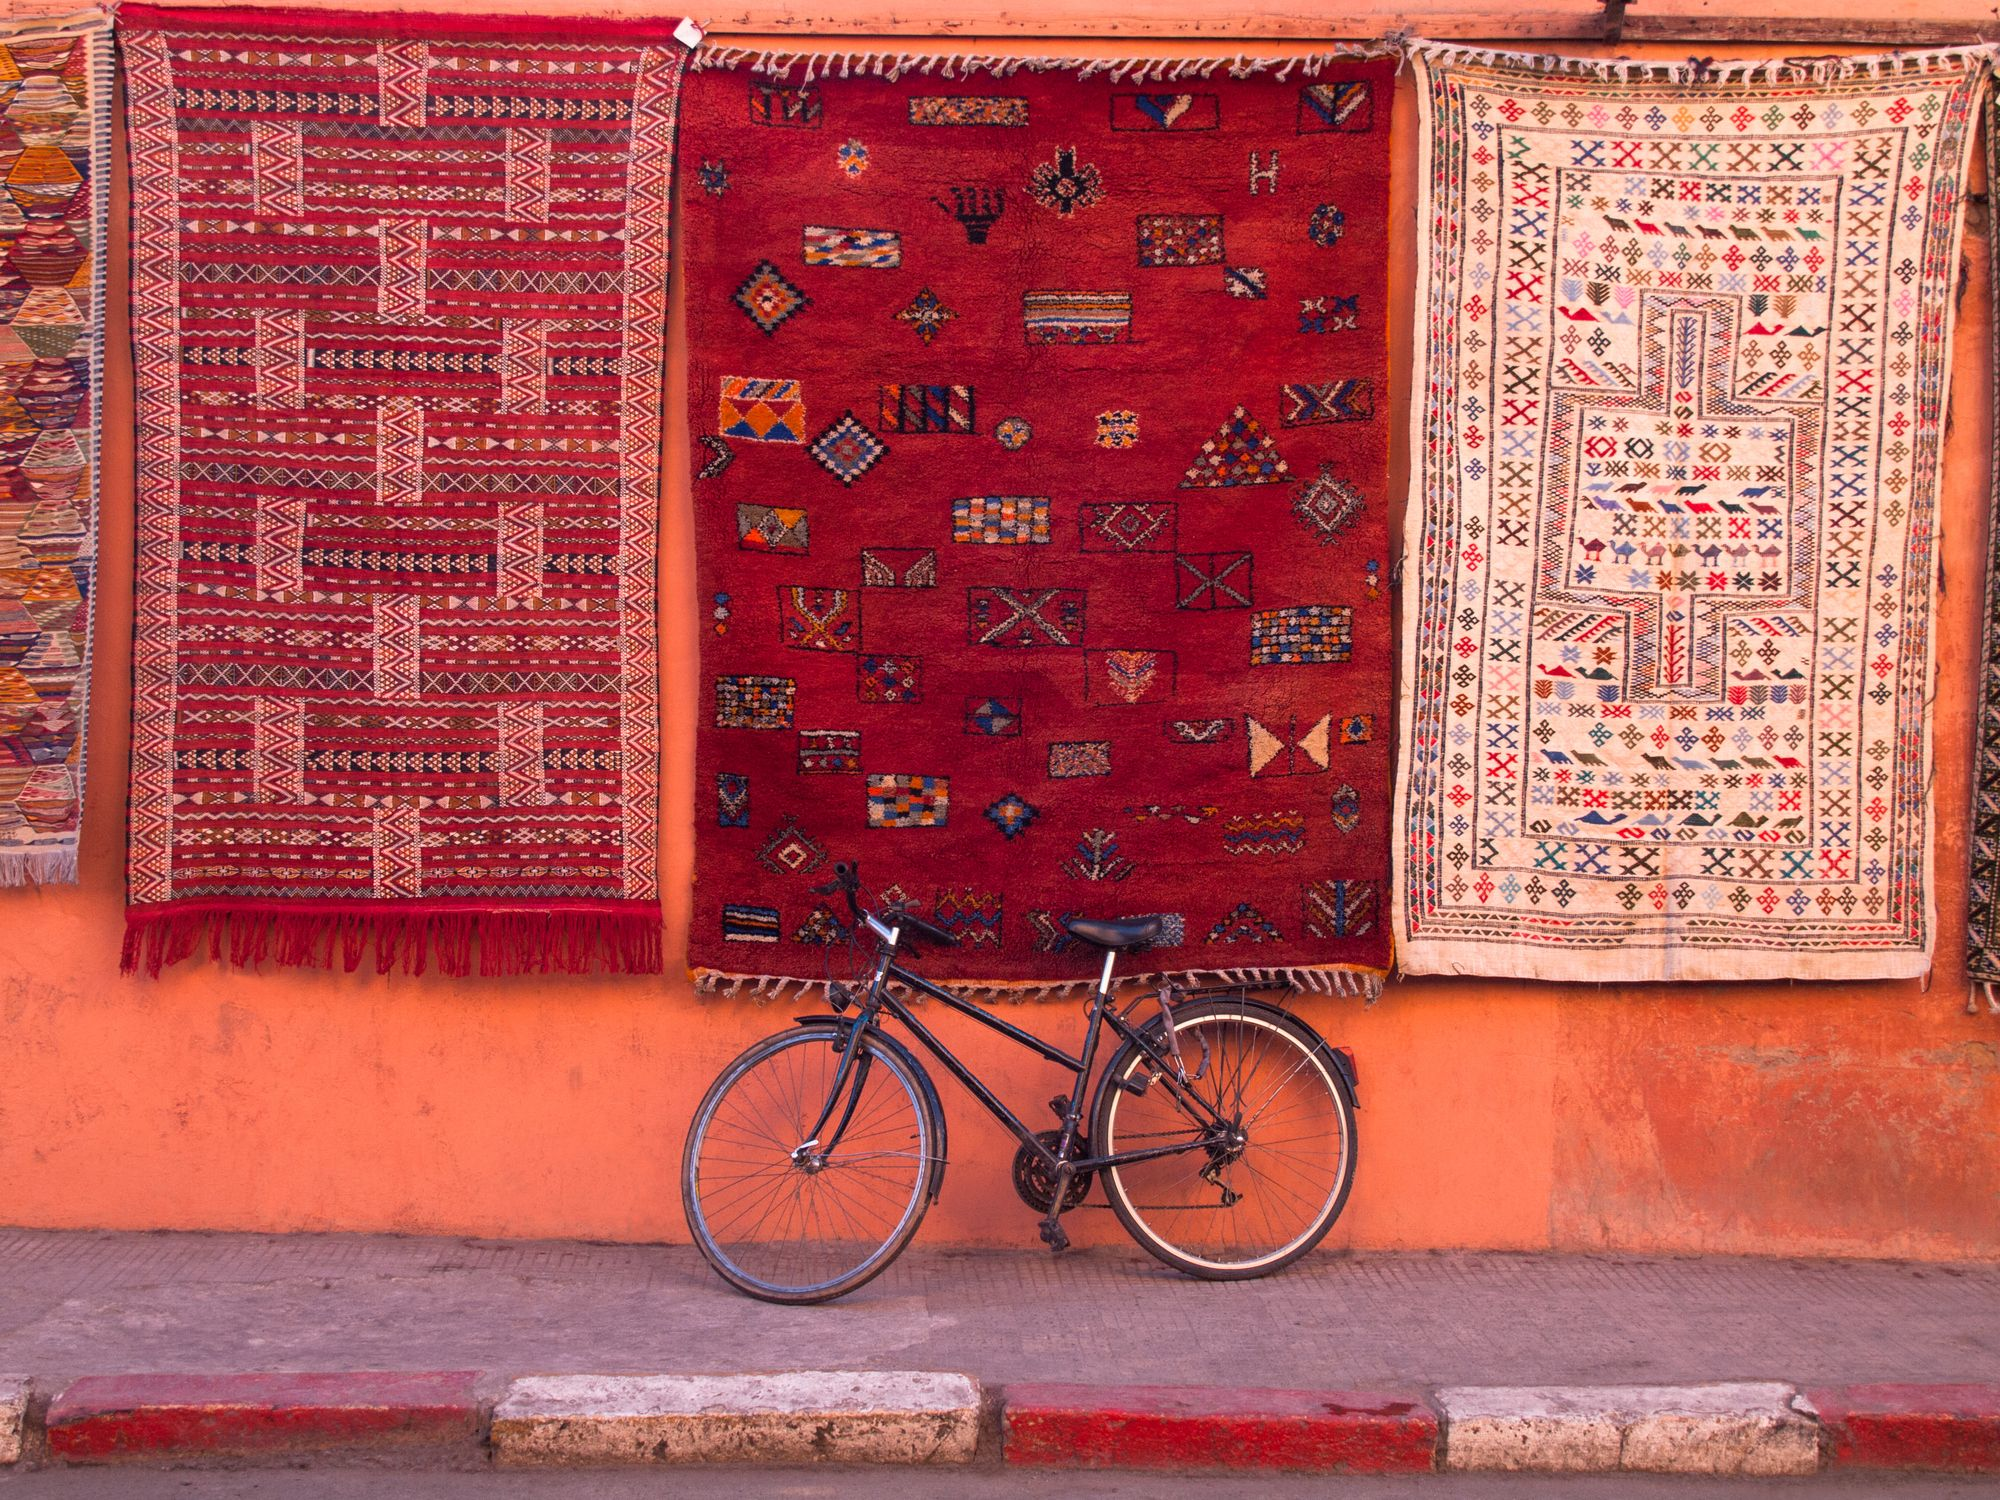 Bicycle parked at wall under hanging carpets with traditional patterns. Marrakesh, Morocco